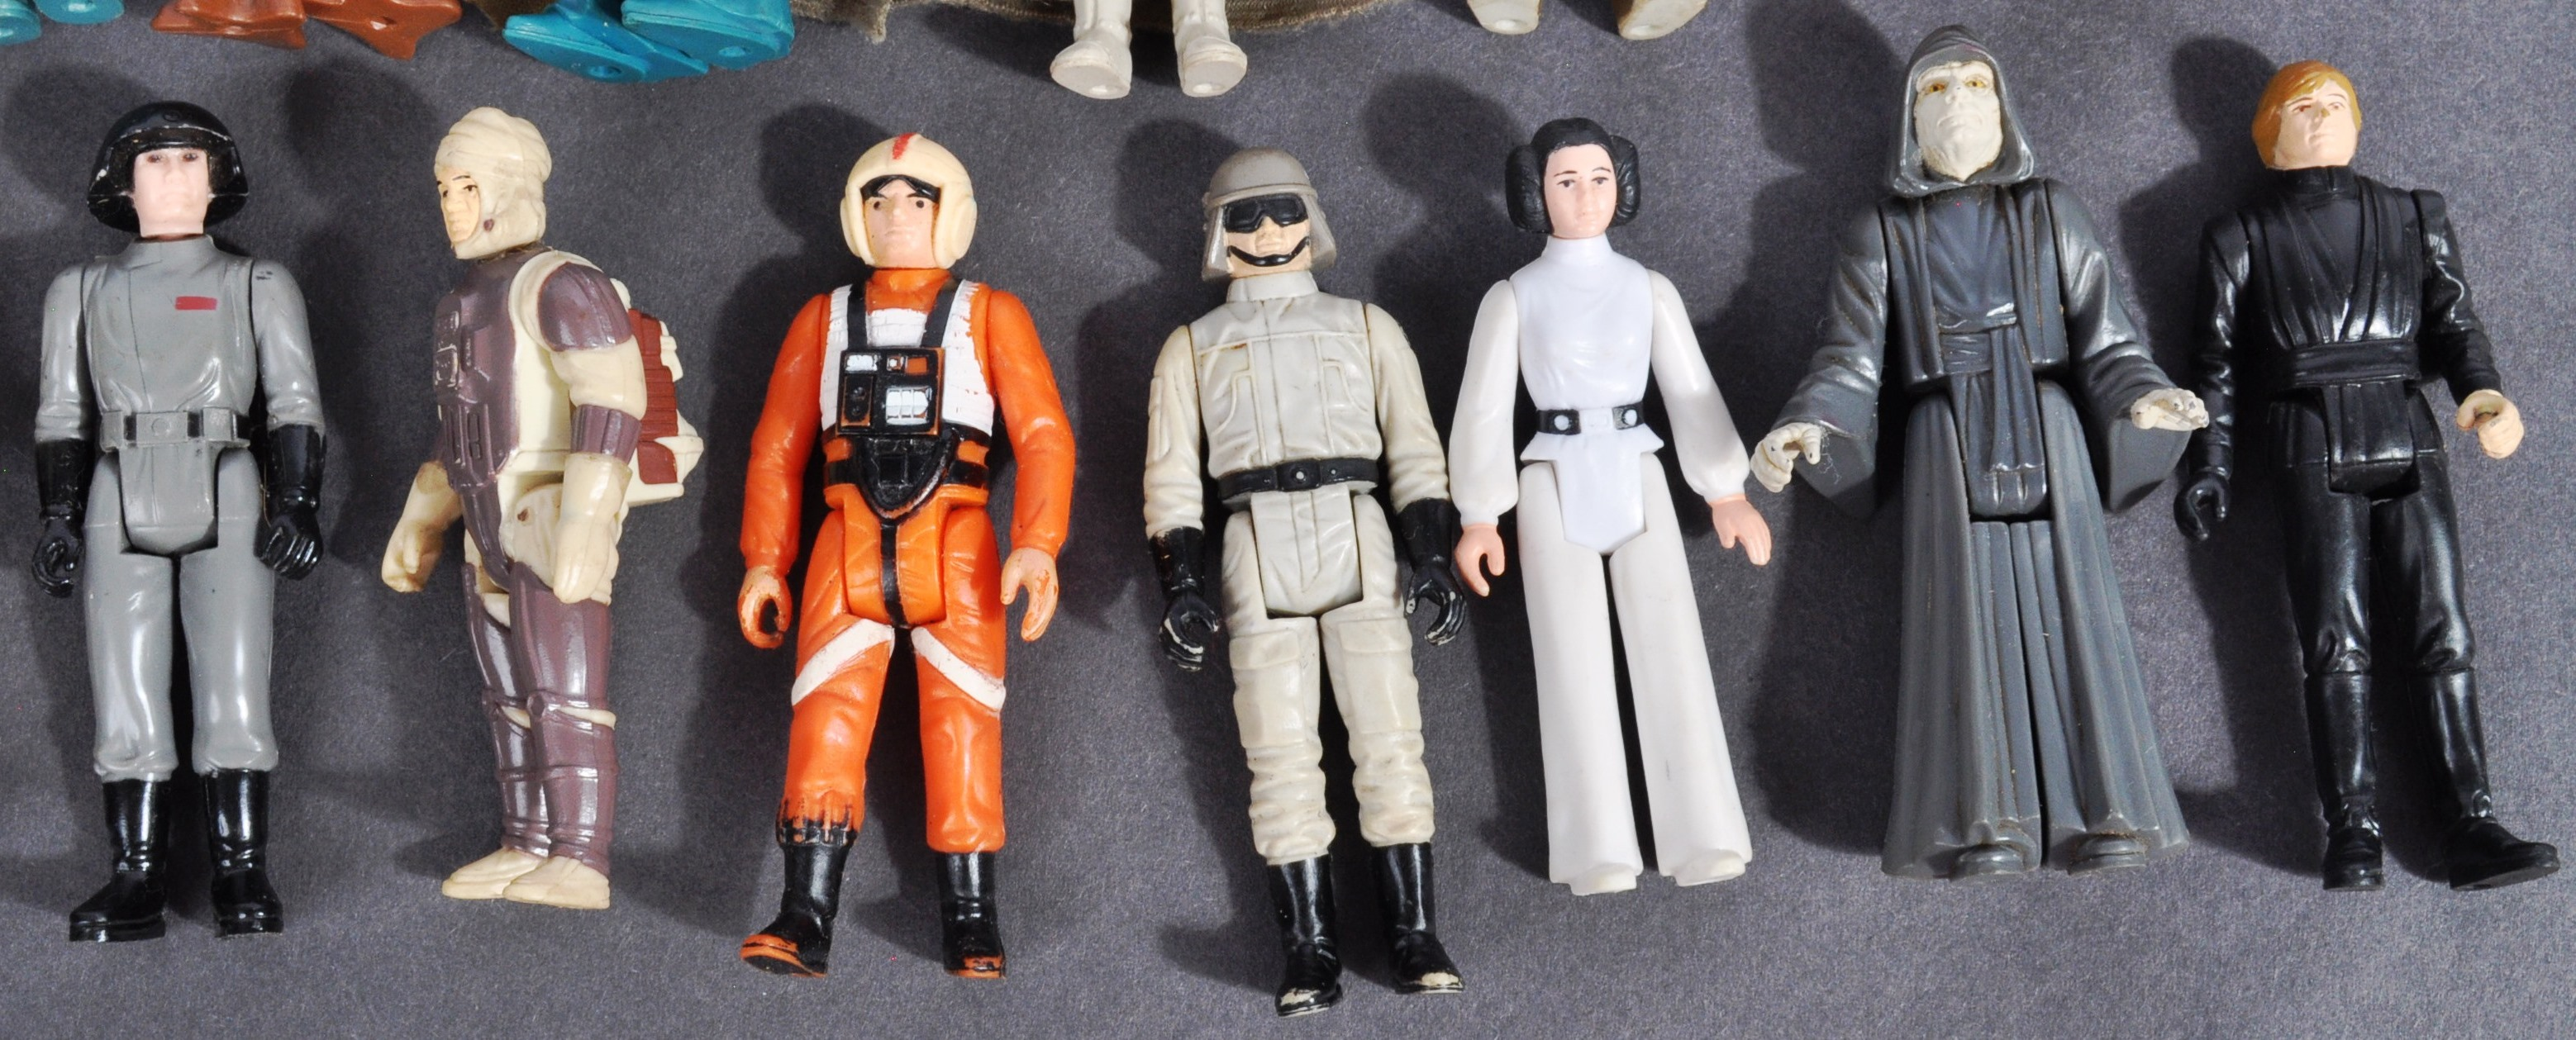 STAR WARS - COLLECTION OF VINTAGE KENNER / PALITOY ACTION FIGURES - Image 4 of 5